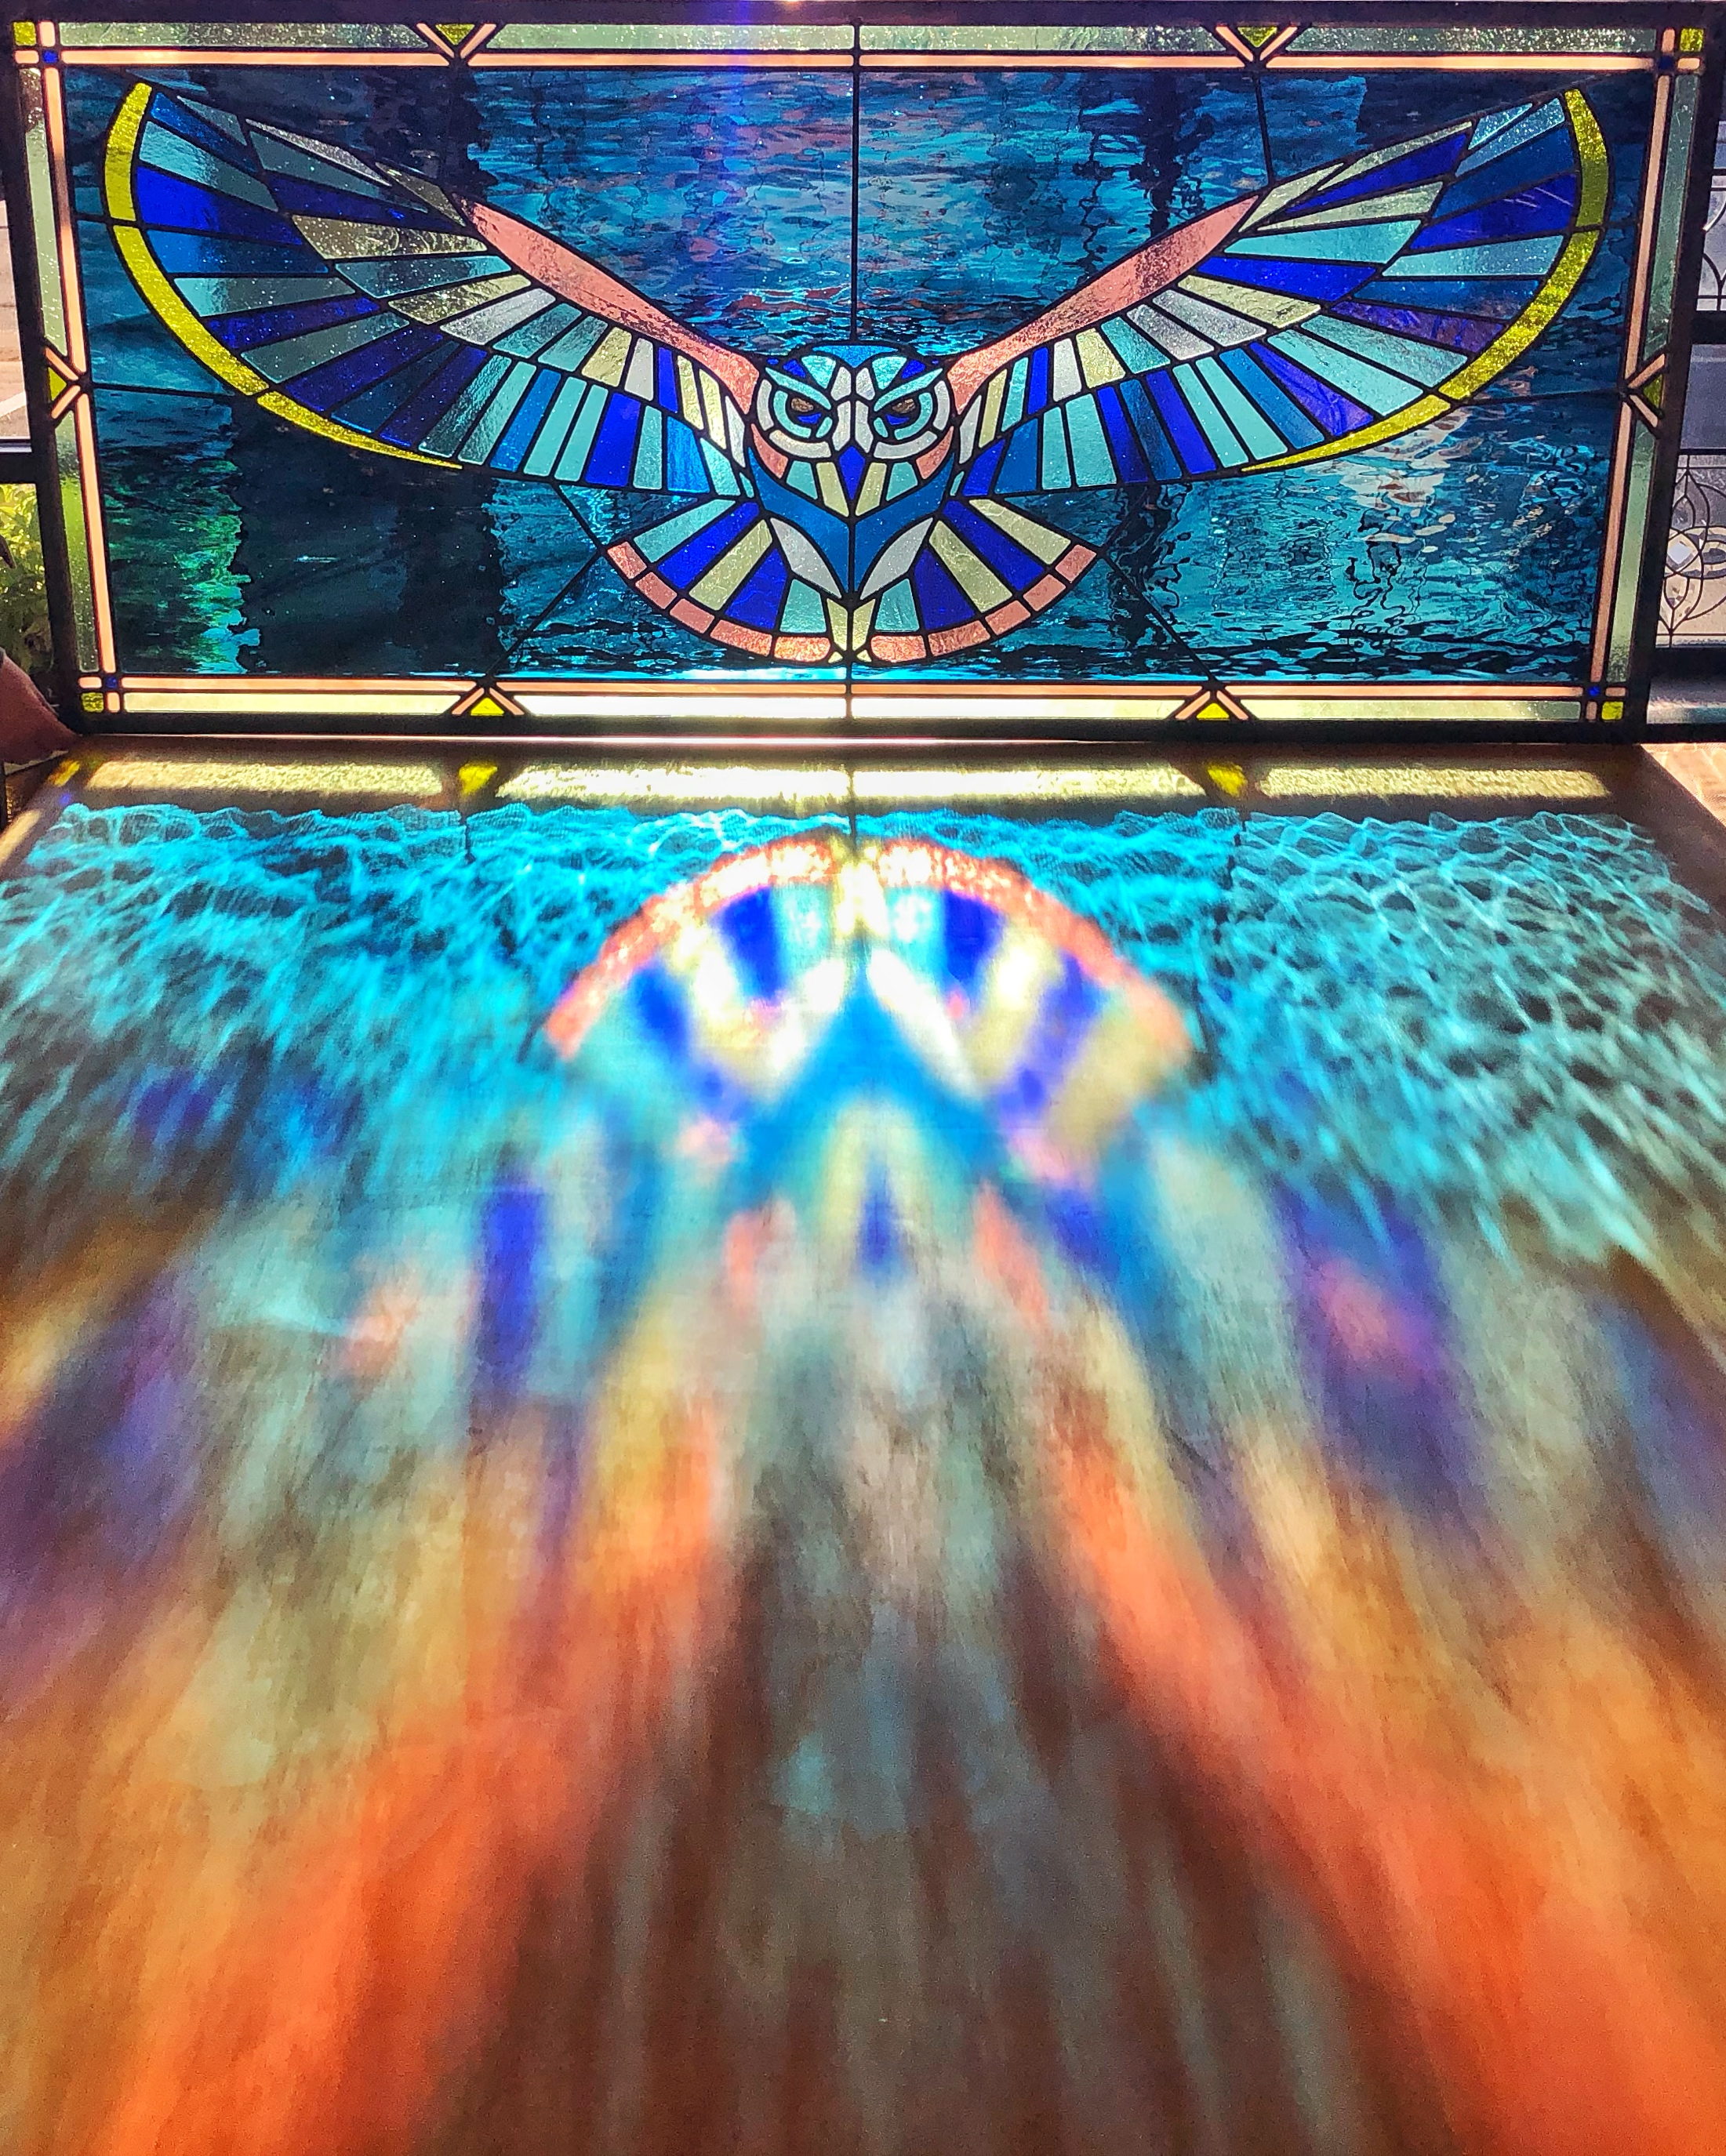 leaded glass stained glass san francisco art glass bay area custom design stained glass legacy glass studios woodside owl cathedral glass water glass opalescent glass eye feather symmetry blue pink green transom animal nature wingspan border.jpg